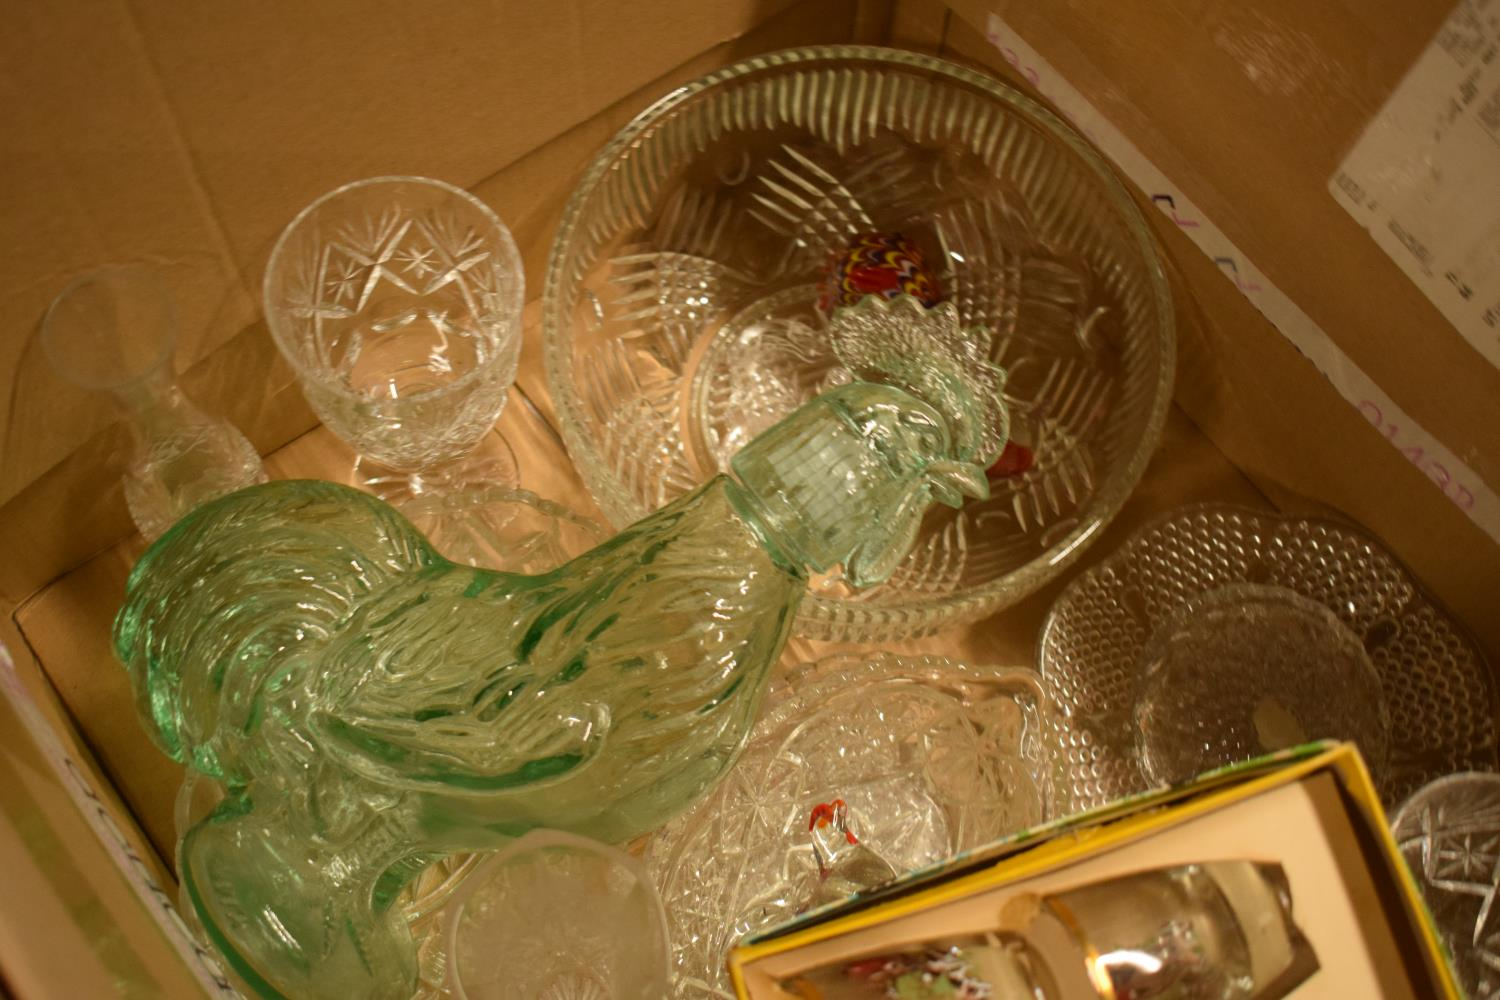 A mixed collection of glass and crystal to include glasses, decanters, tumblers etc .Condition is - Image 2 of 3